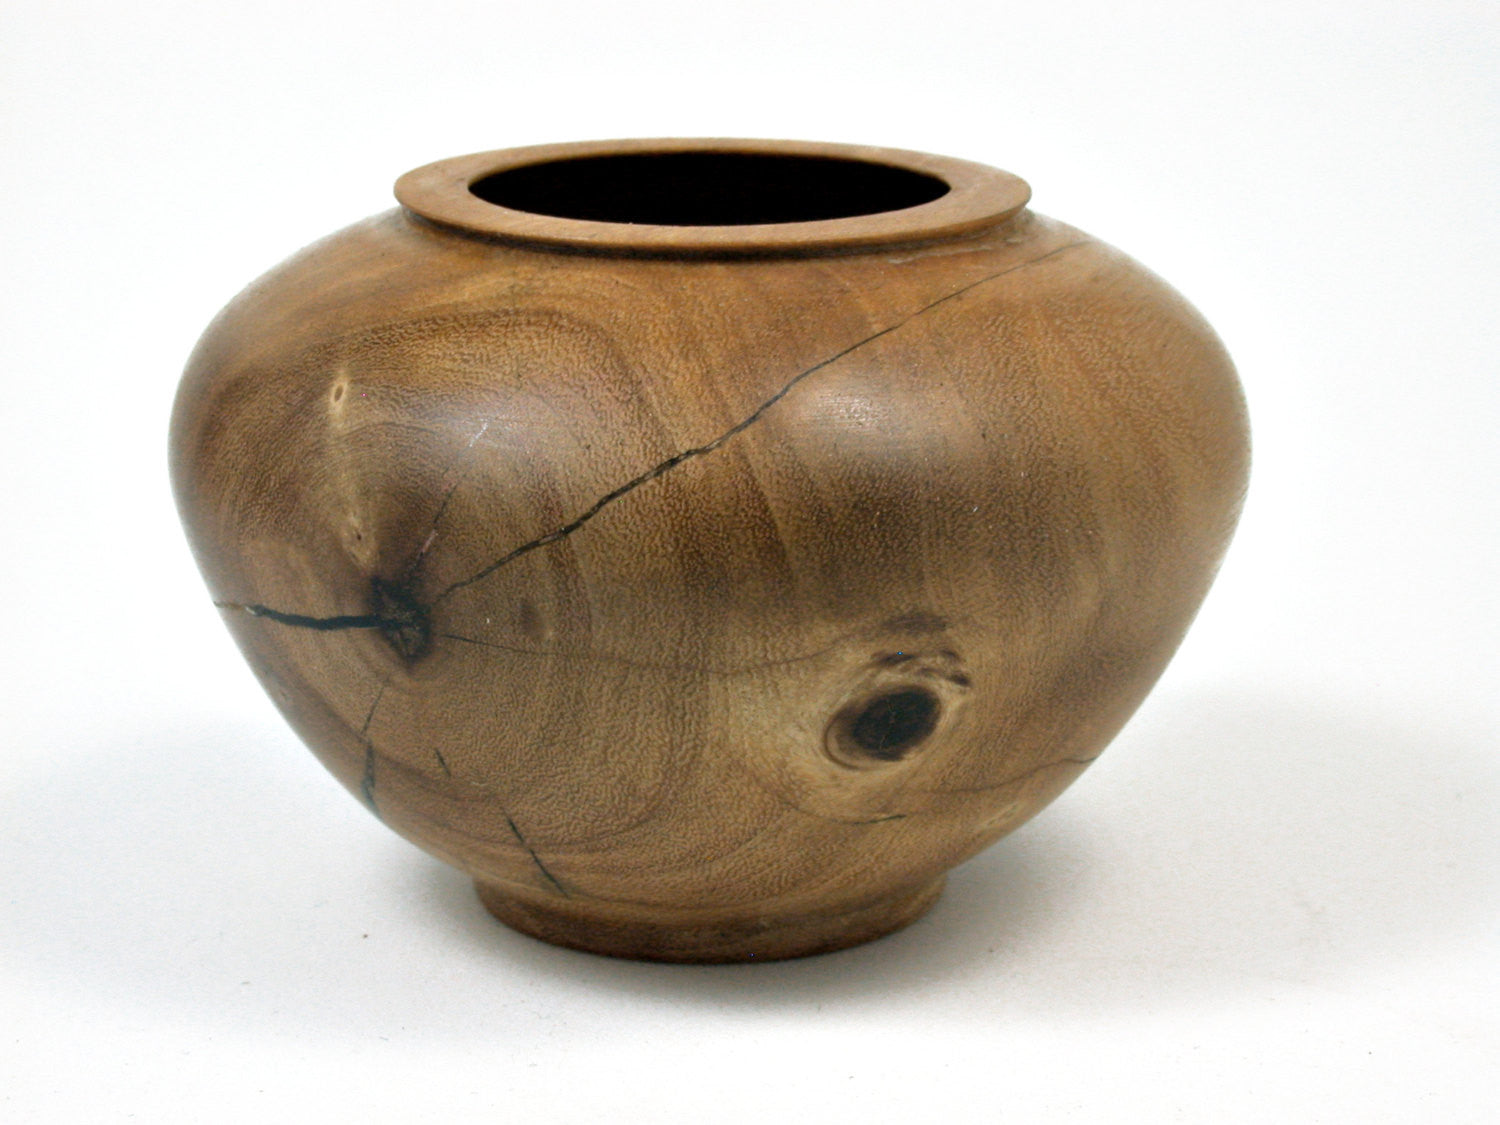 LV-0325 Red Mangrove Hand Turned Wooden Bowl, Vase, Hollow Form-RARE